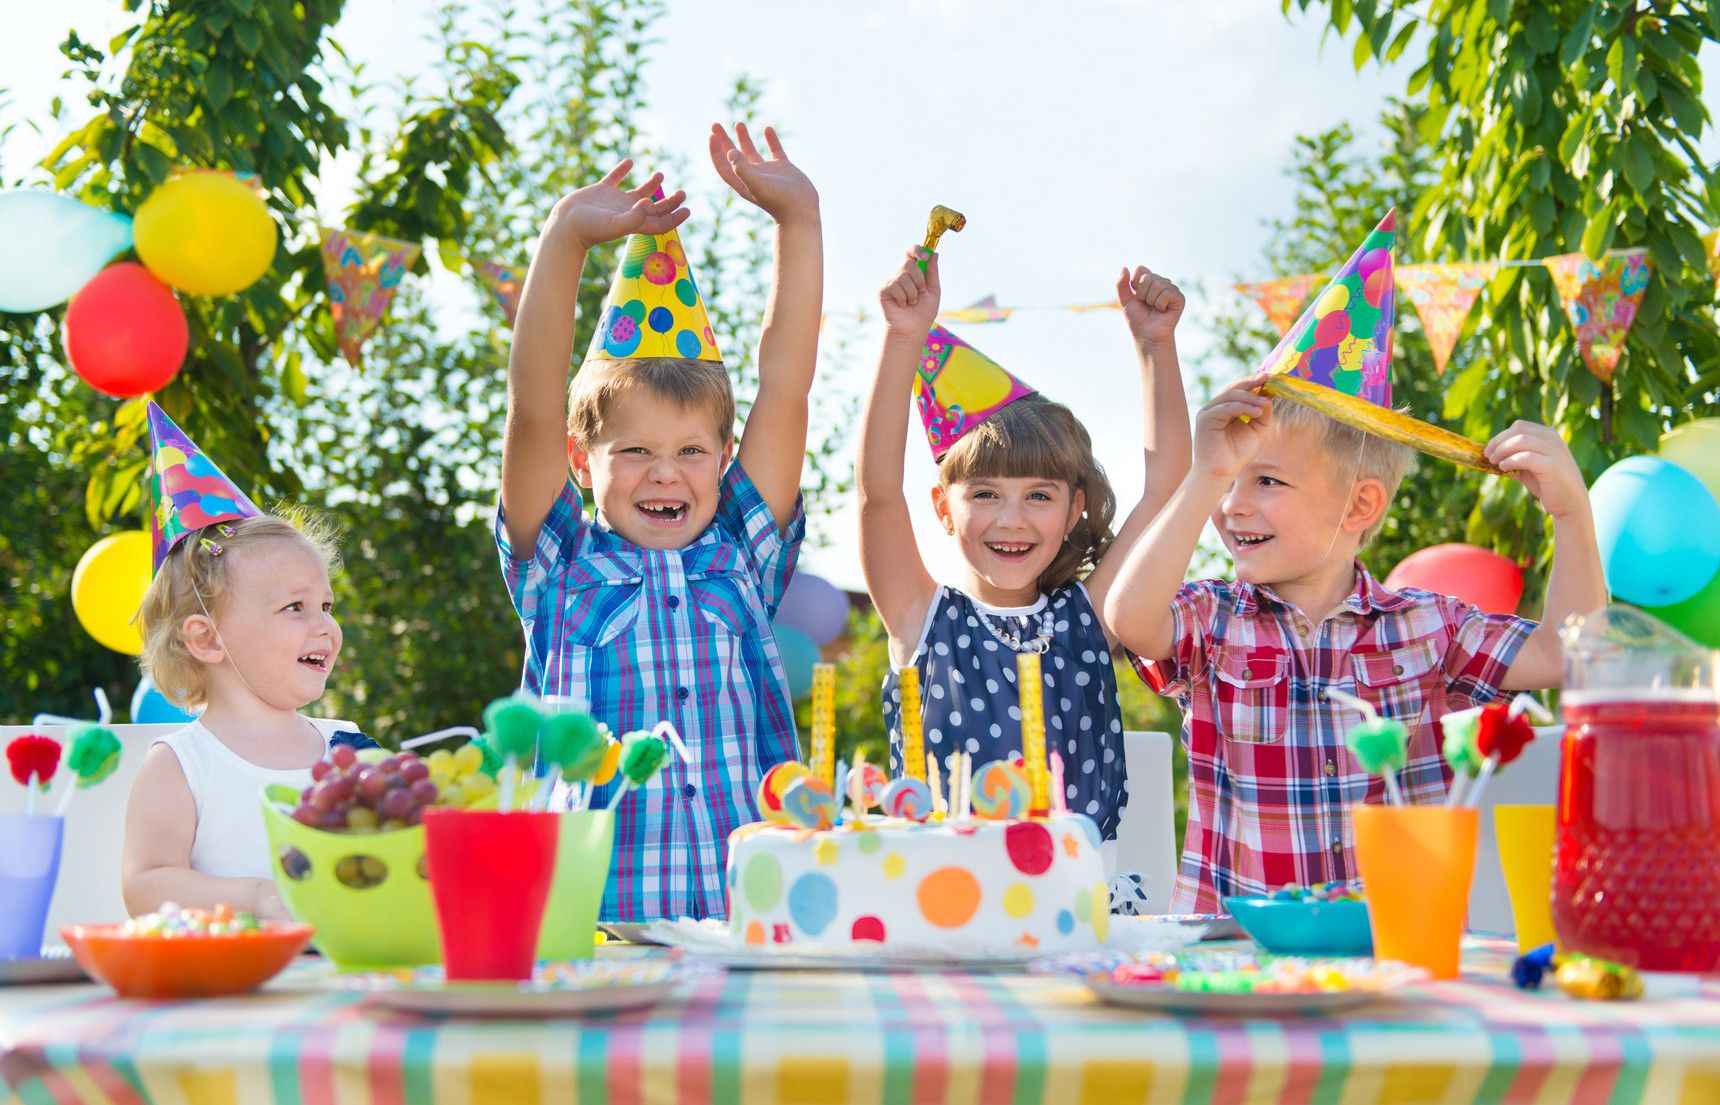 Best ideas about Kids Birthday Party Entertainment . Save or Pin Hire Children s Entertainment & Kids Party Entertainers Now.